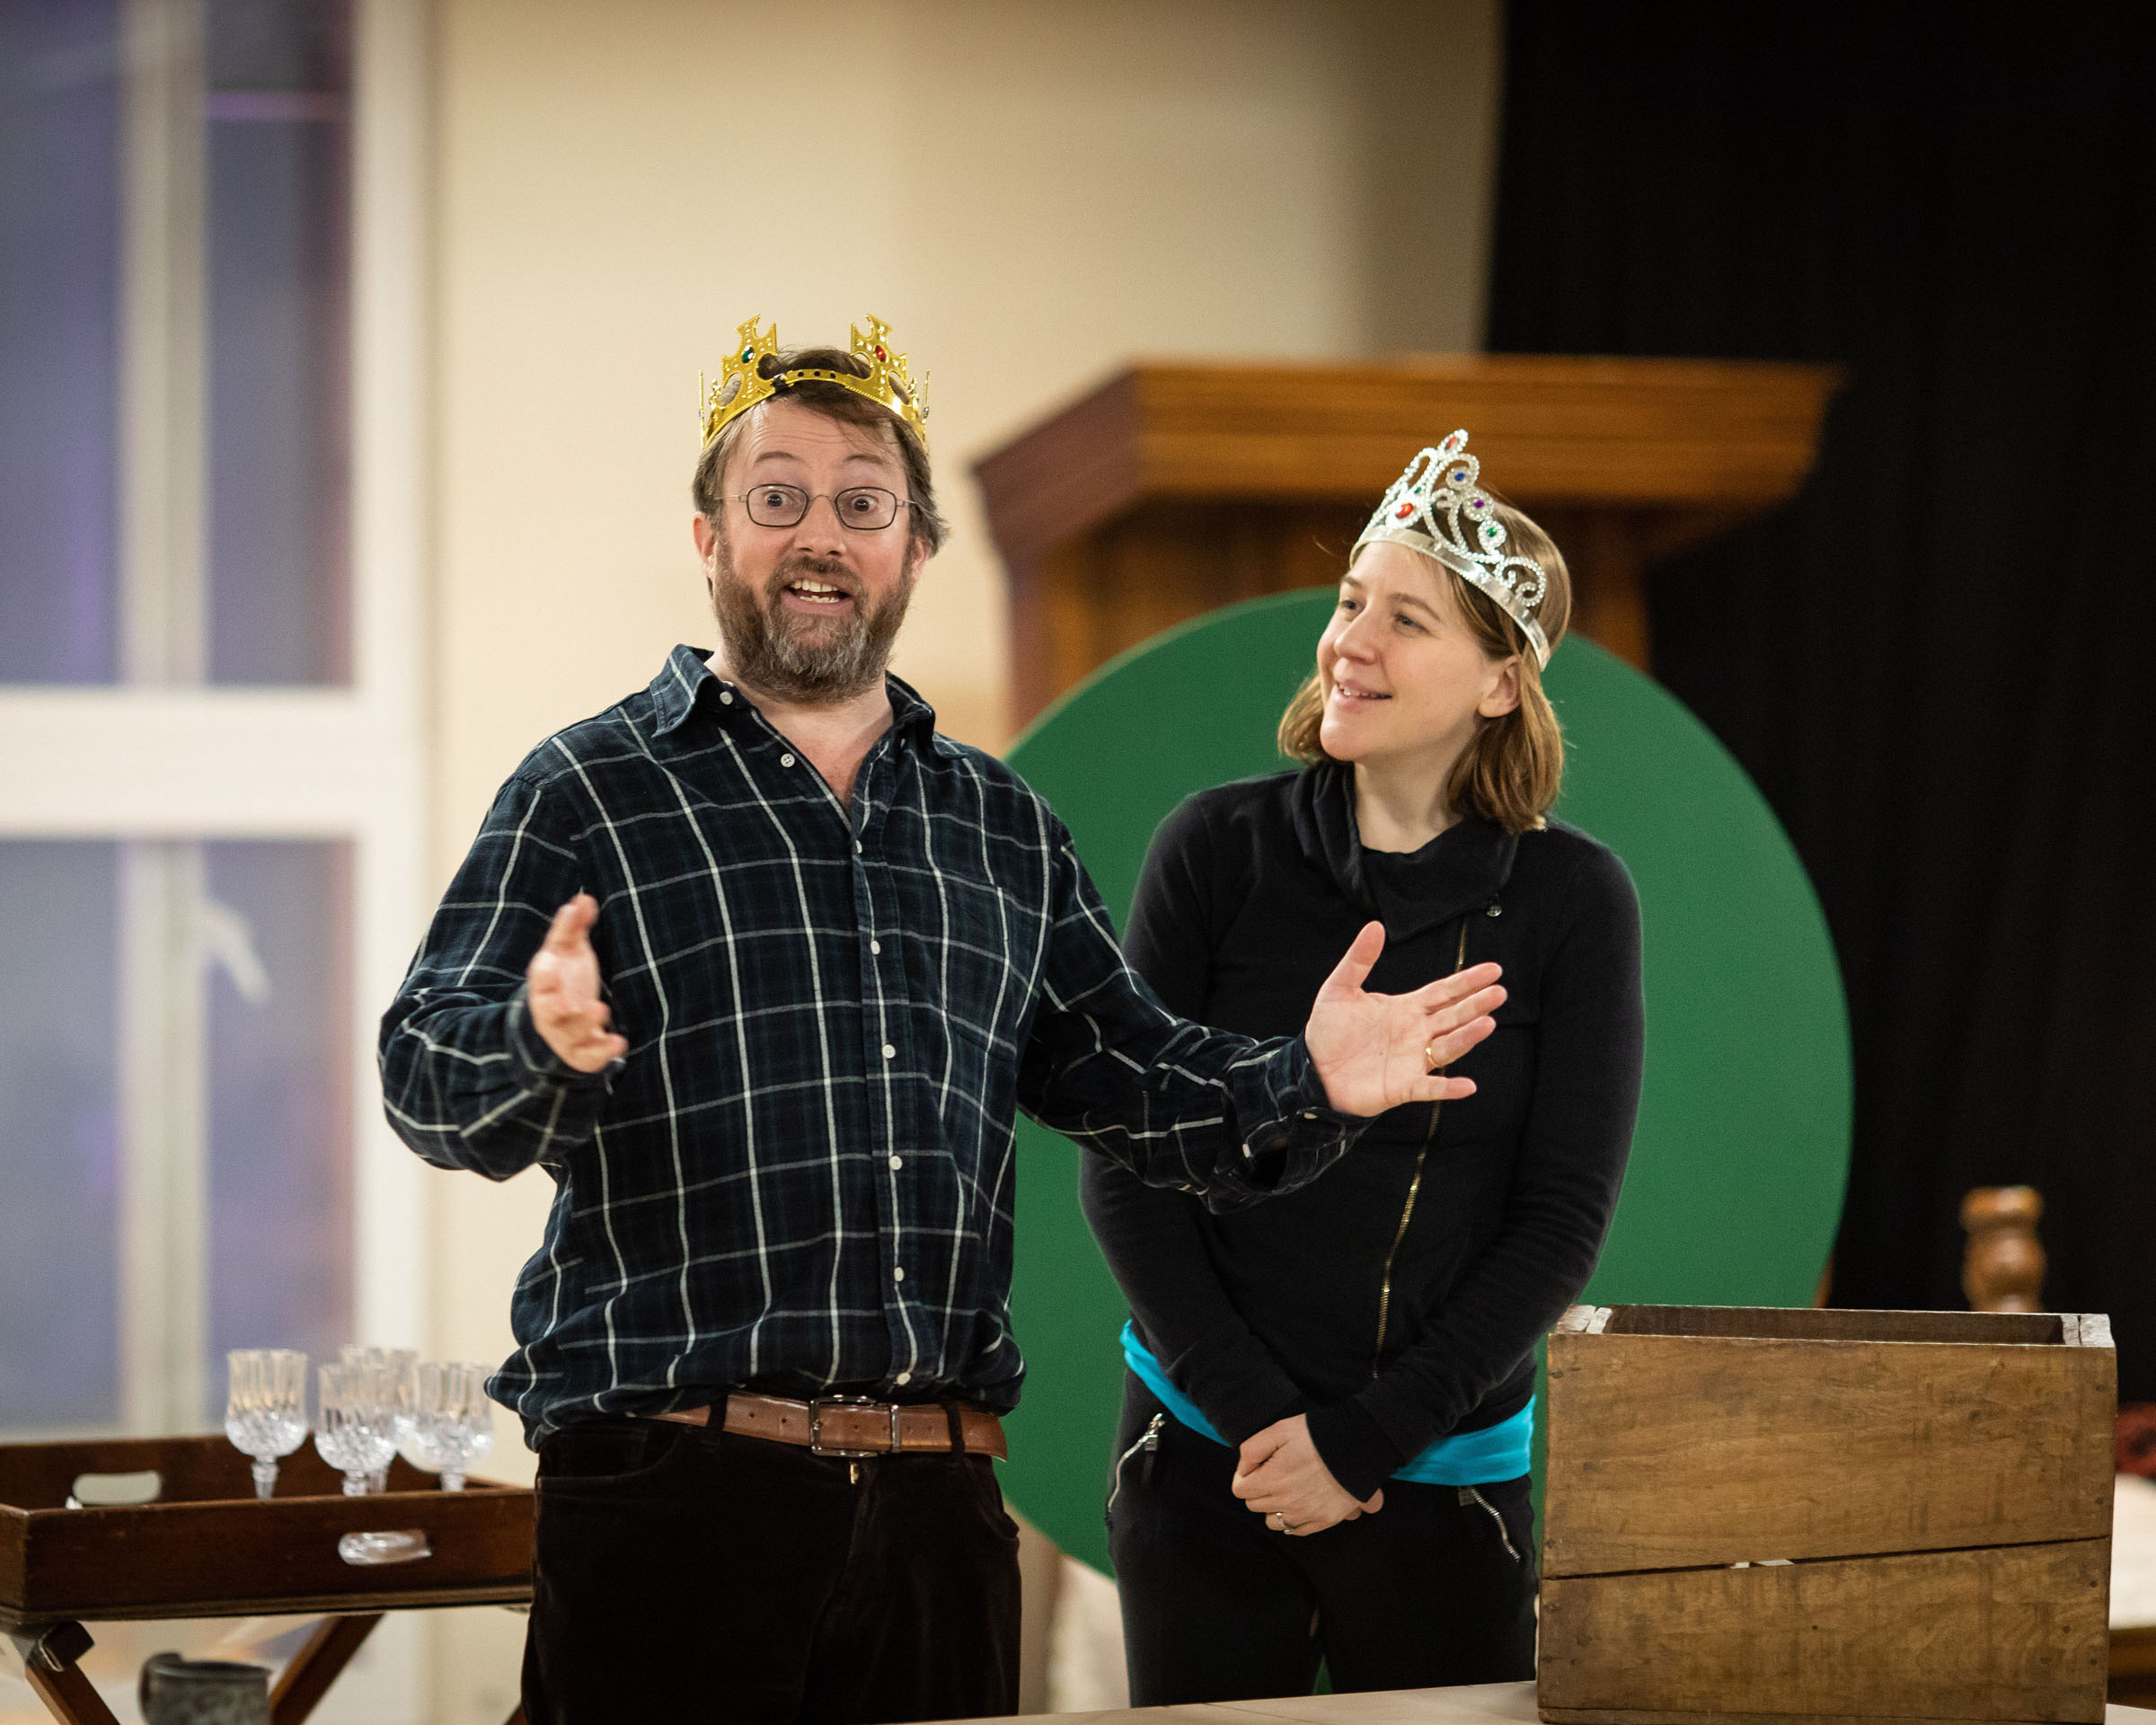 David Mitchell (William Shakespeare) and Gemma Whelan (Kate)